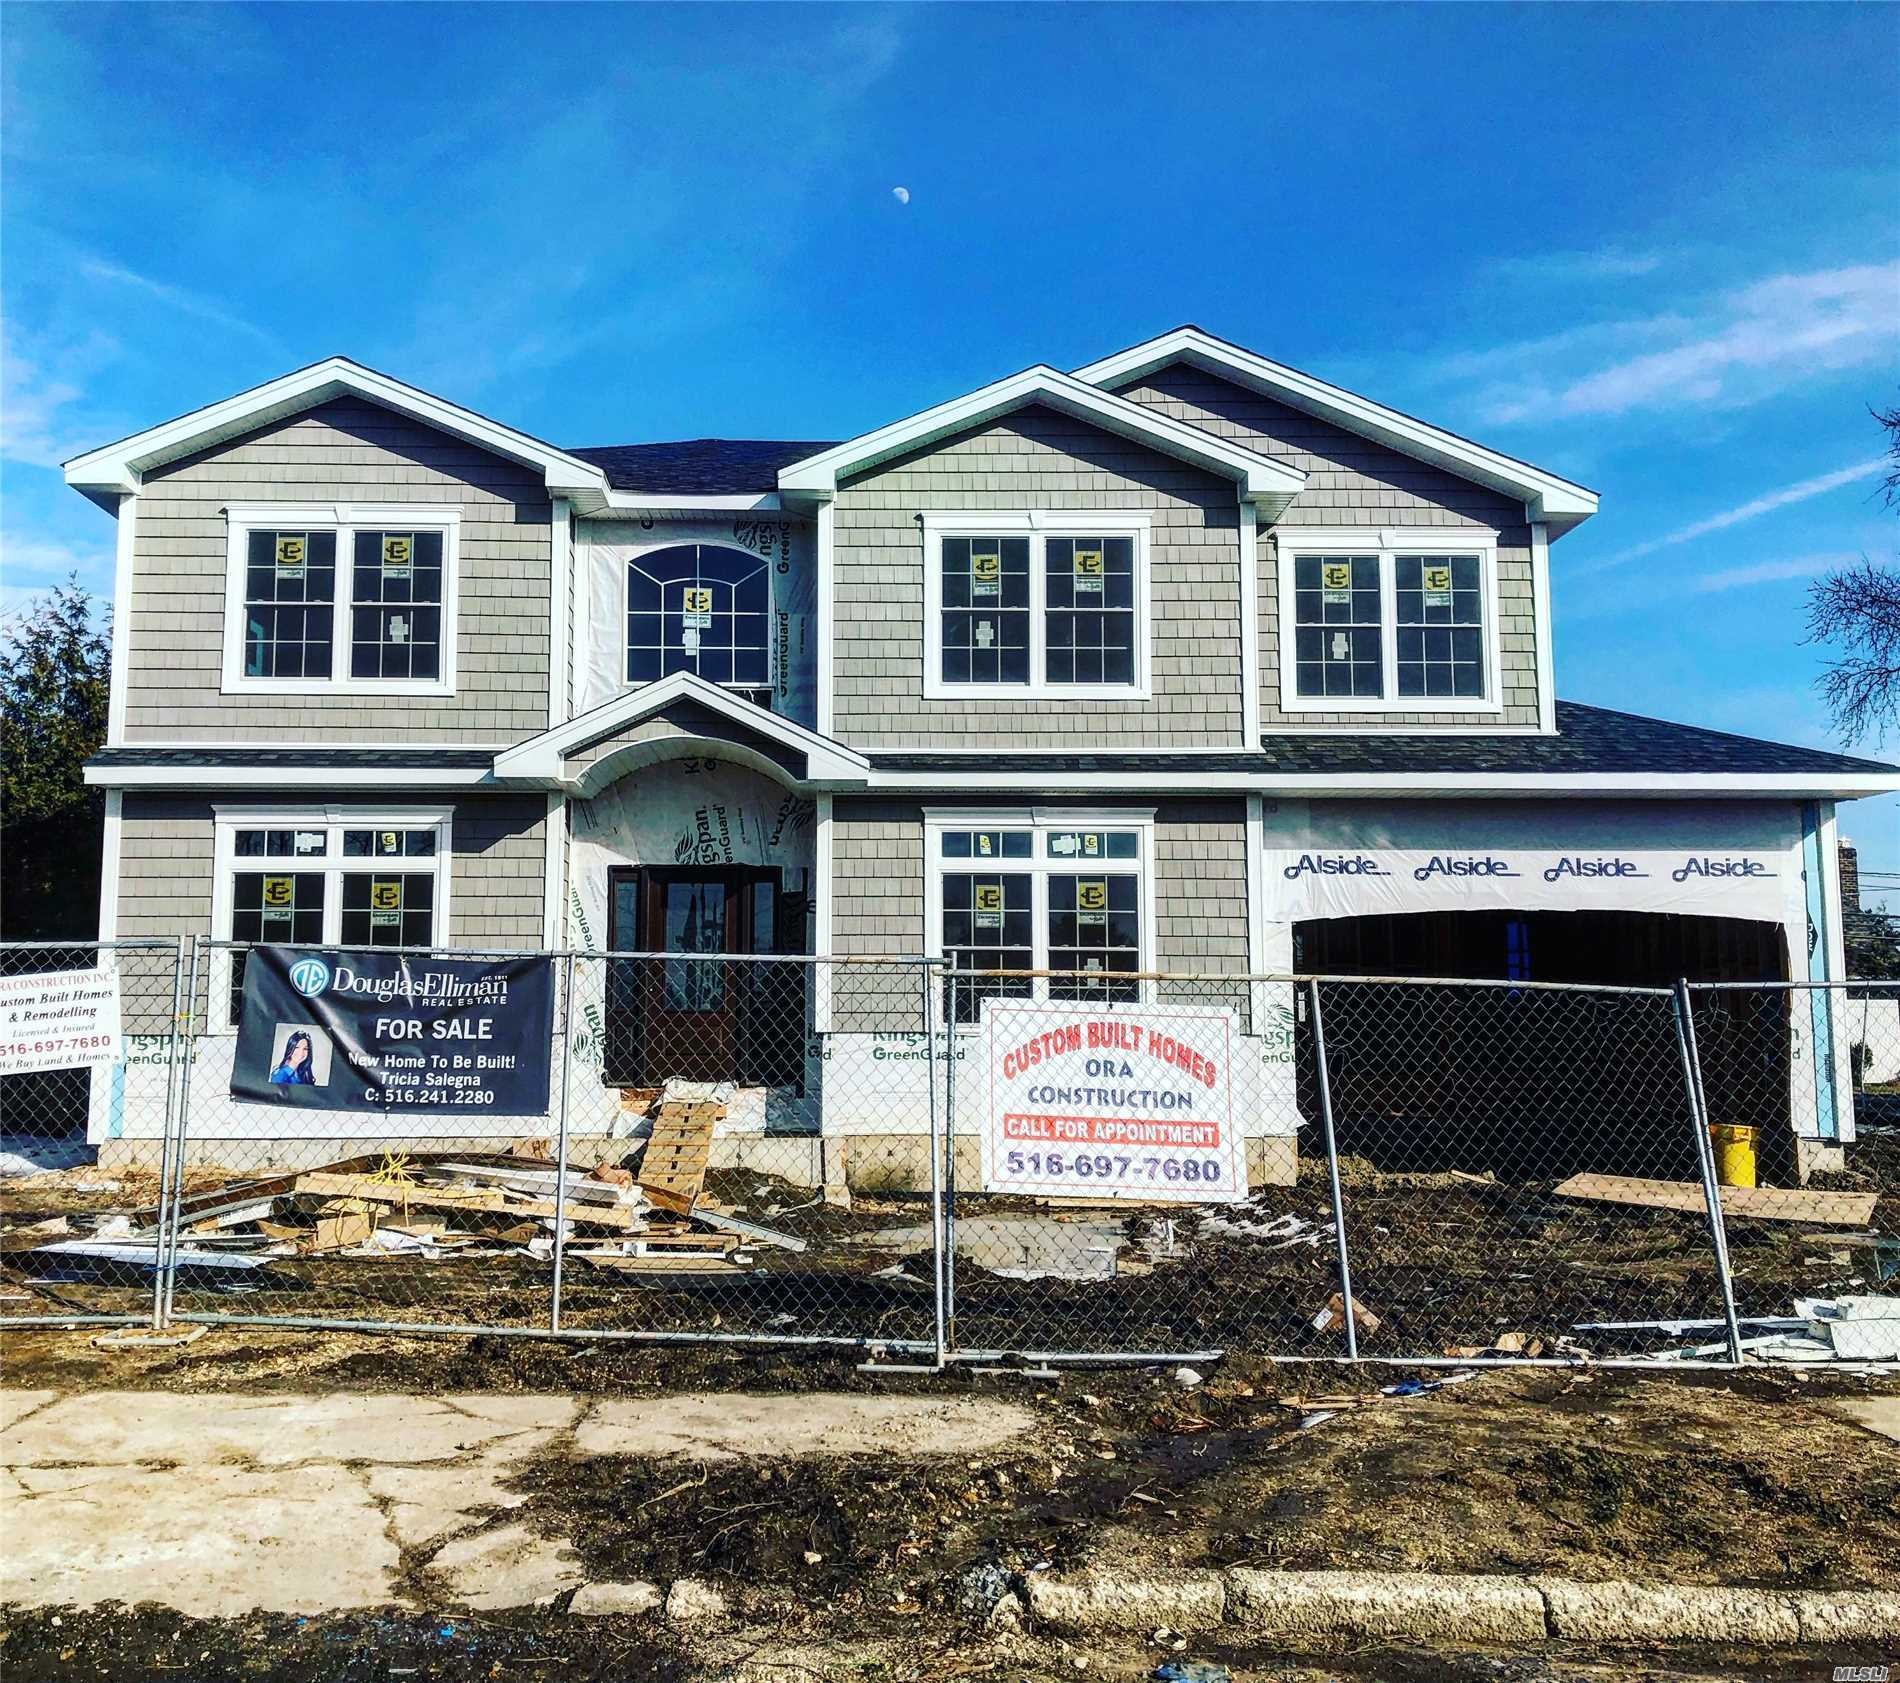 New Construction Being Built! This Home Features Dramatic 2 Story Entry Leading To Open & Spacious Layout W/Custom Eik W/Gas Cooking & Oversized Granite Island. First Floor Also Includes Junior Master, Full Bath, And Mud Room. 9 Foot Ceilings On First Floor. 2 Car Garage. Second Floor- Stunning Master Ste W/Lux Full Bath & Lg His And Her Closets. Three Bdrms & Fbth. Exquisite Finishes & Superior Craftsmanship! 9' Ceiling Basement. Robbins Ln Elem. Time To Customize! Ready Spring 2019!